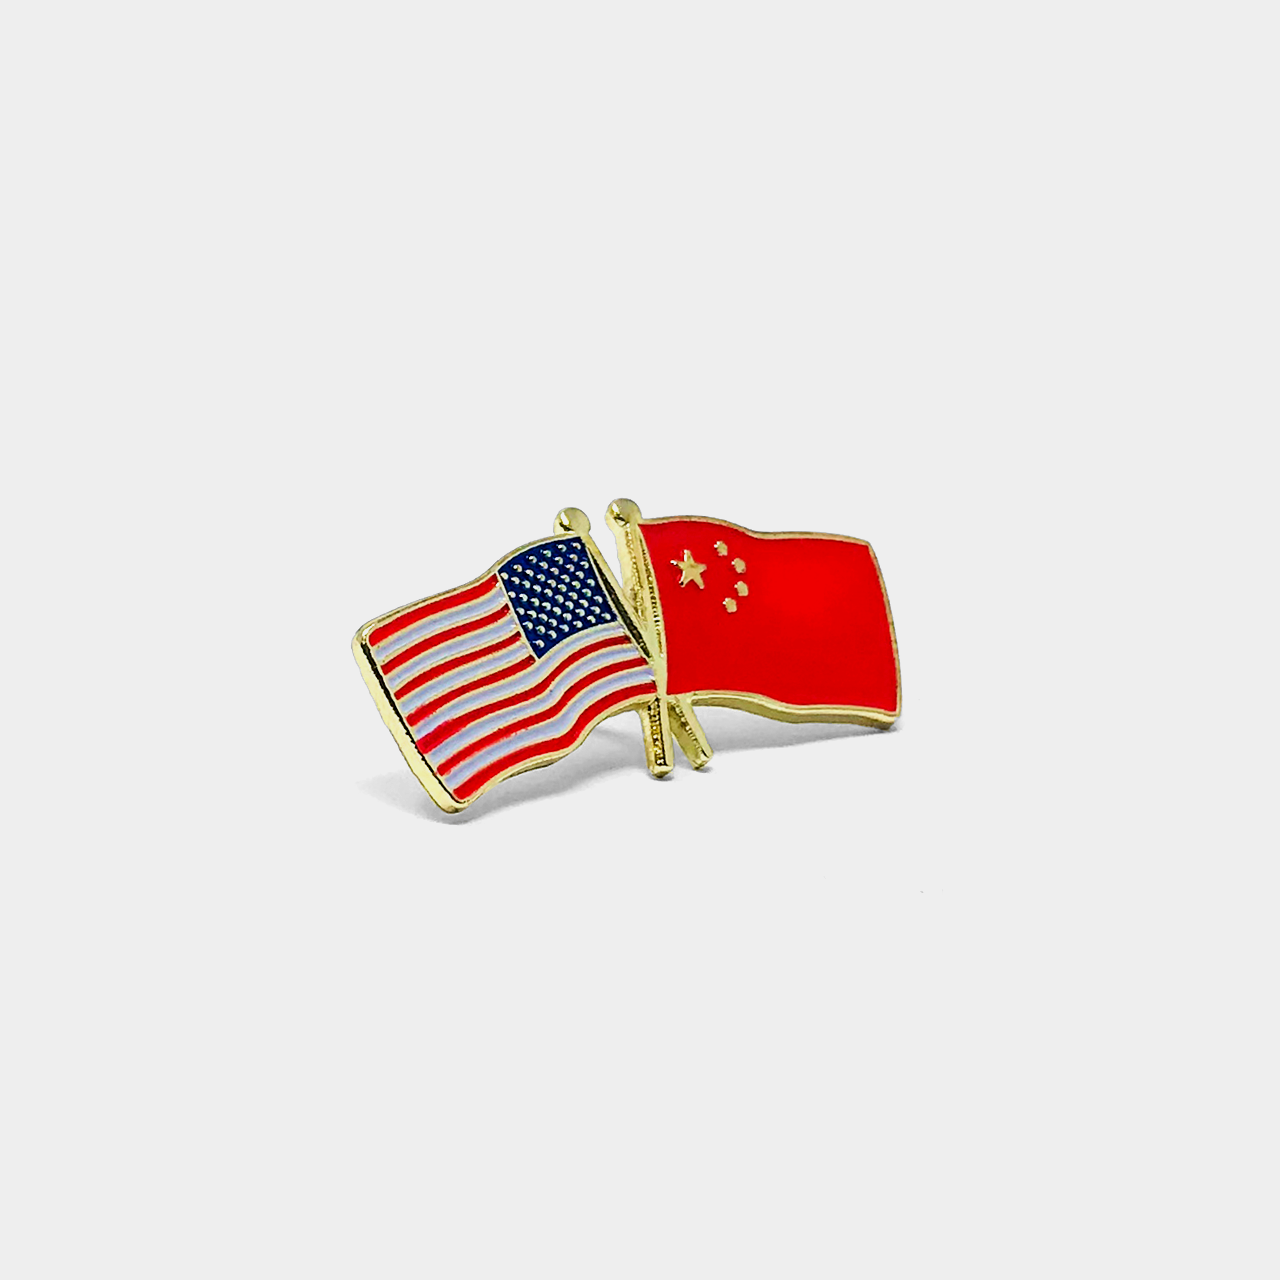 U.S. & China Flag Pin